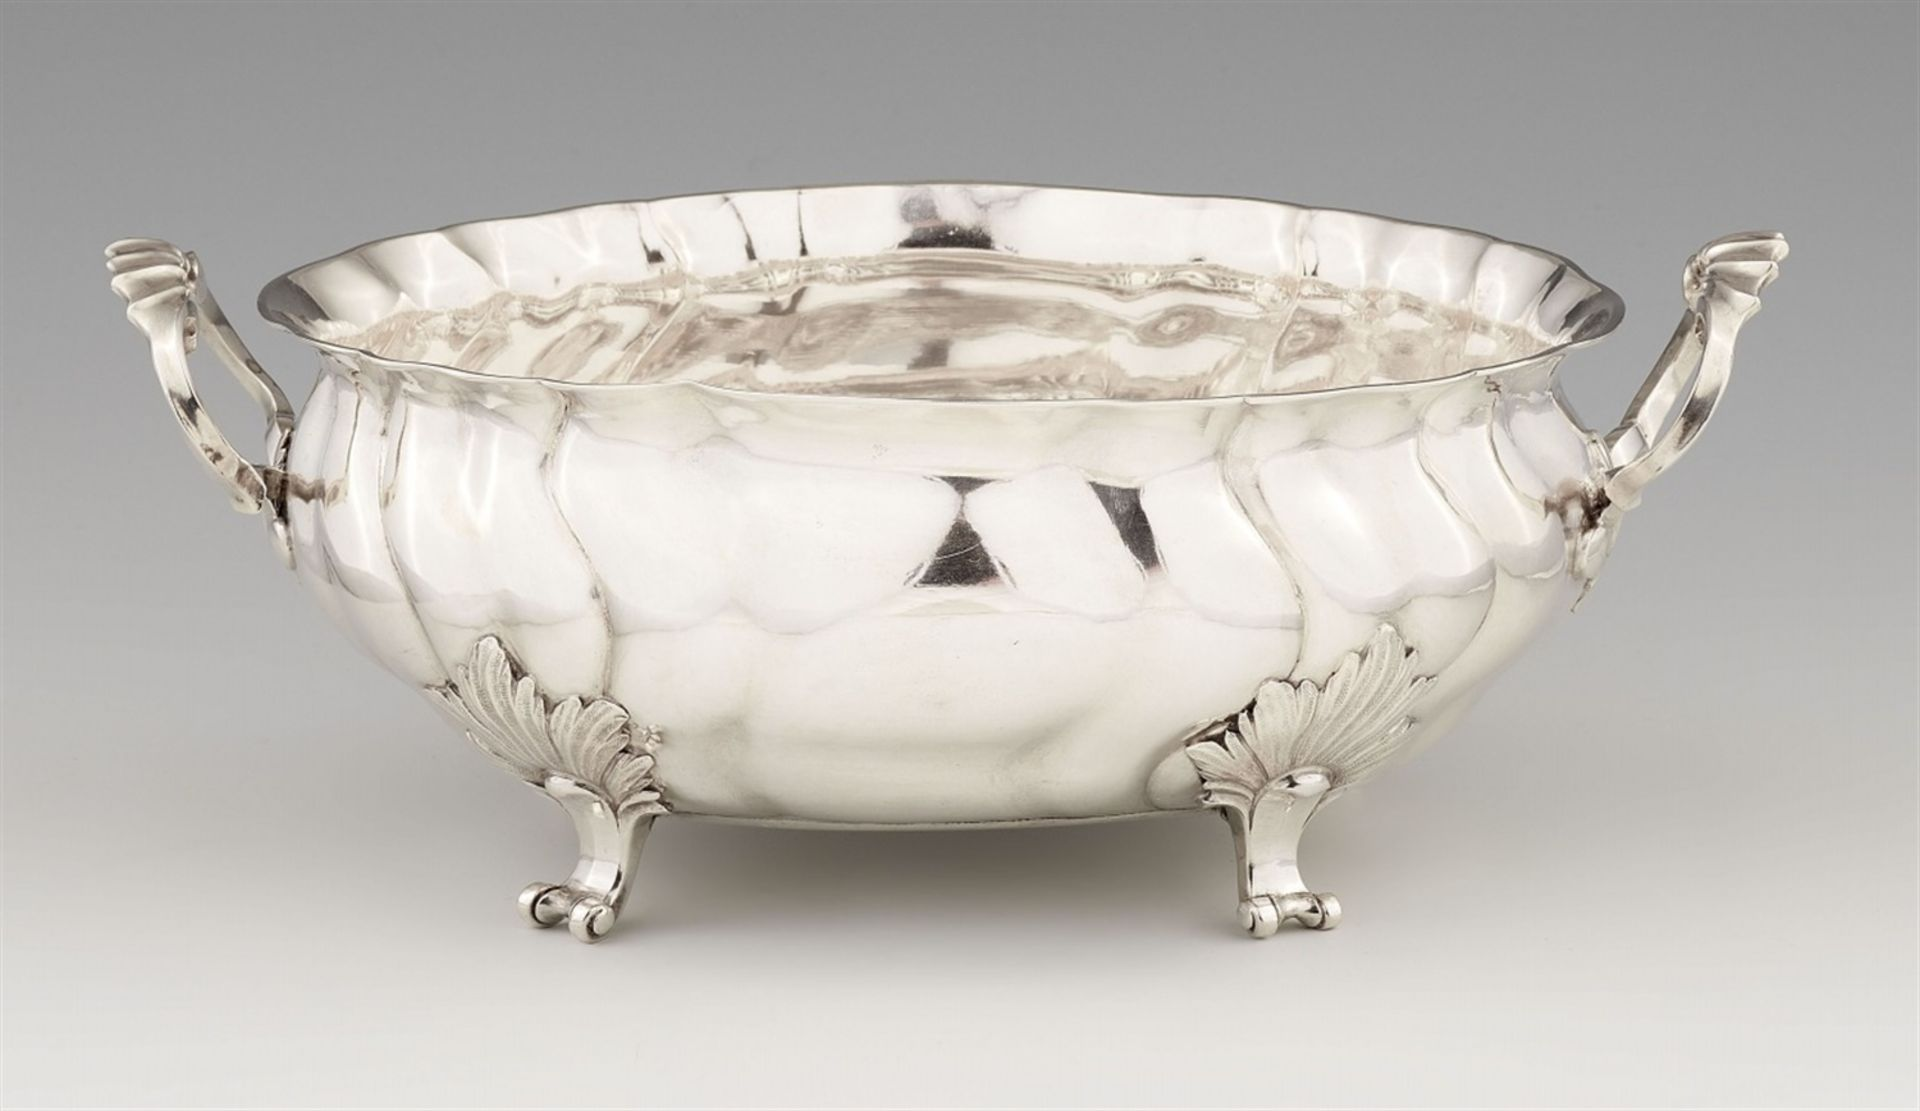 Los 752 - A Kassel silver dishSilver. A twist fluted oval dish resting on four feet. Brands: BZ Kassel for